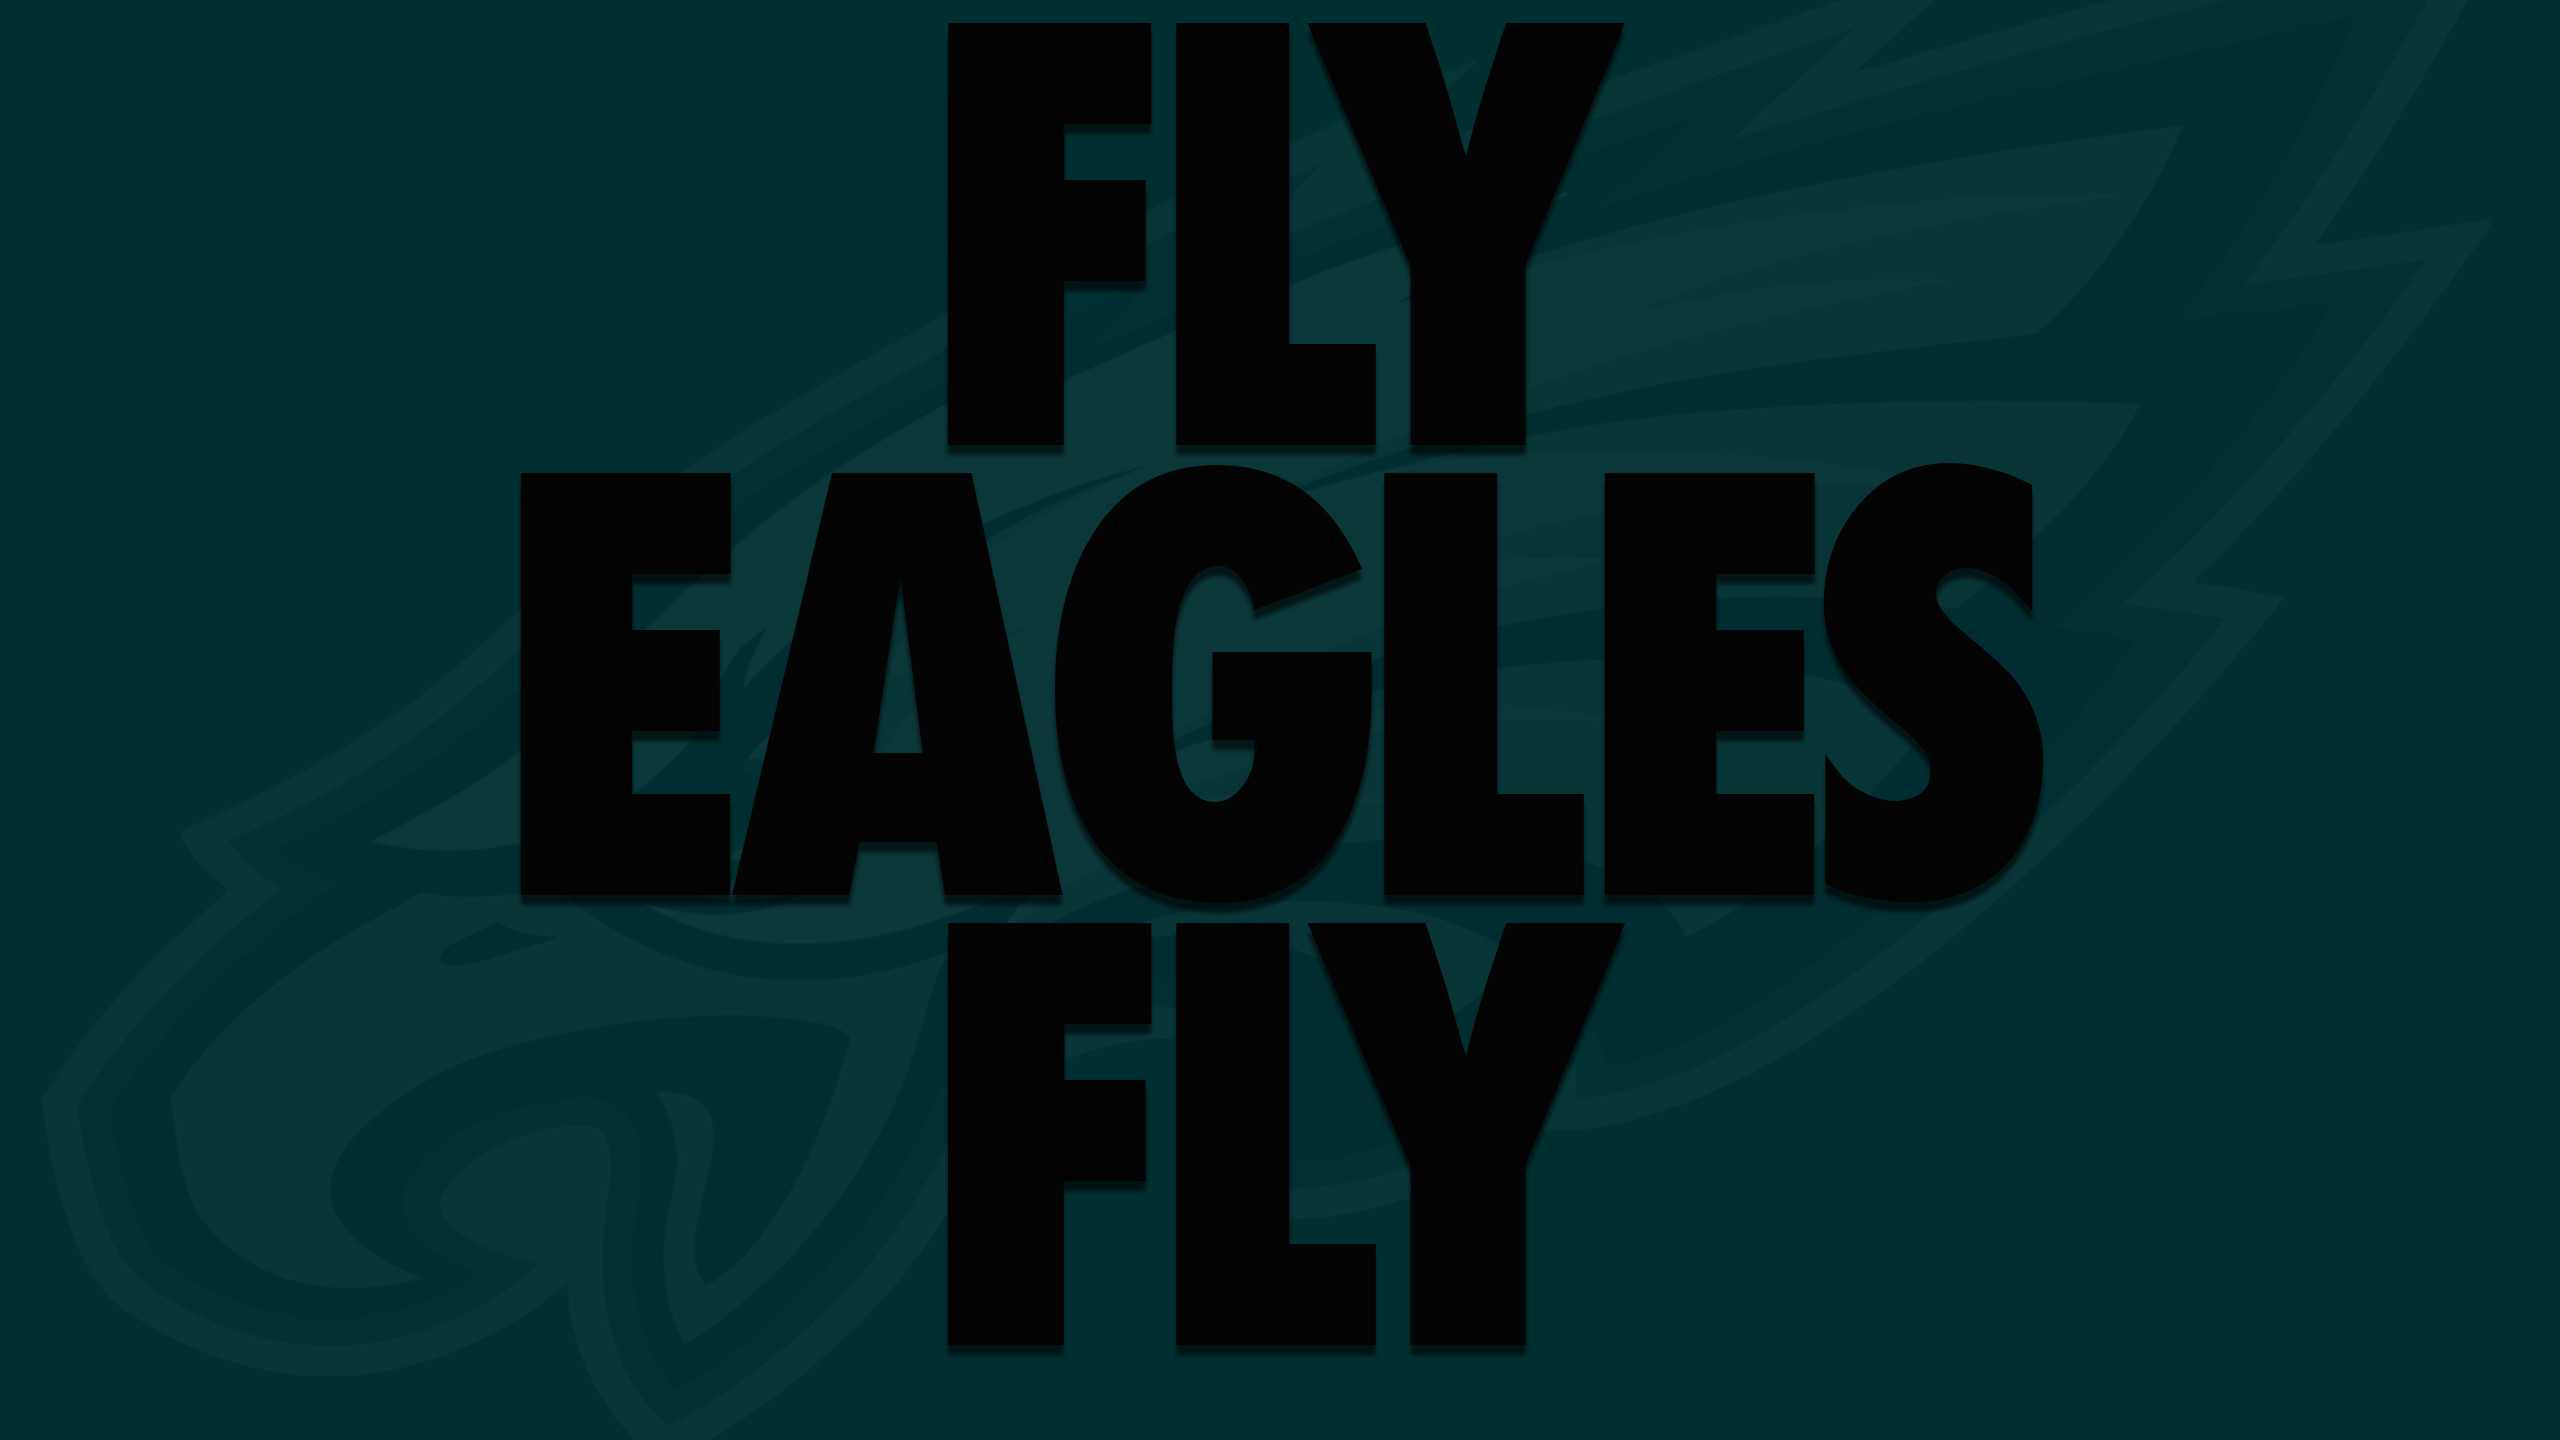 2560x1440 More Eagles